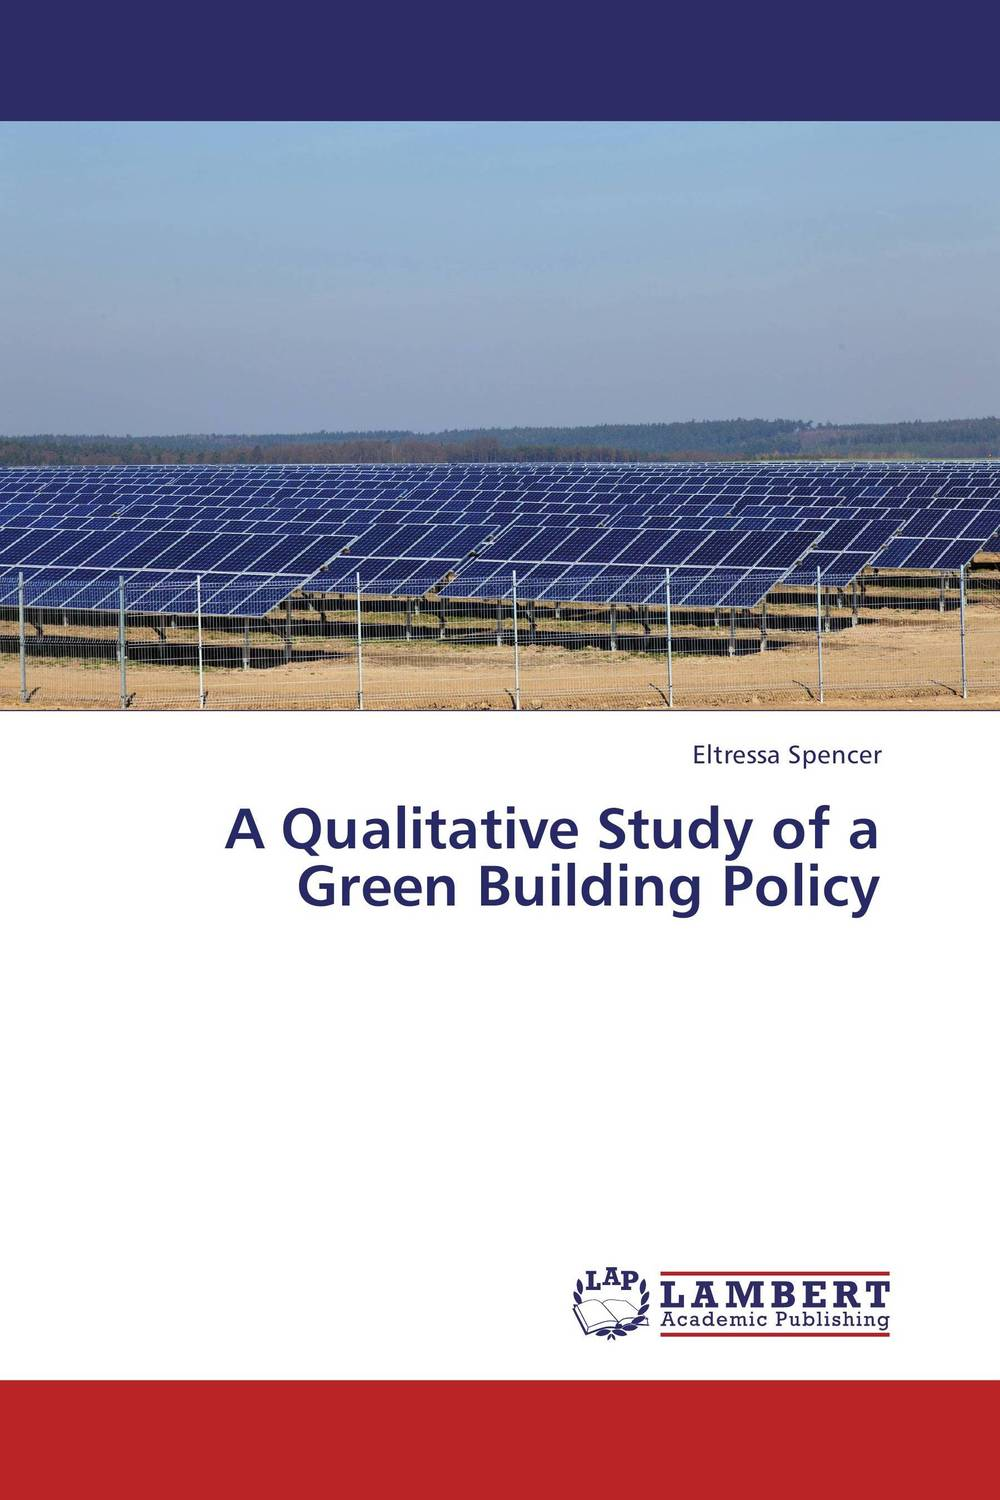 A Qualitative Study of a Green Building Policy mtgather durable steel 6800zz deep groove ball bearings two side metal shields 10x19x5mm mechanical parts accessories